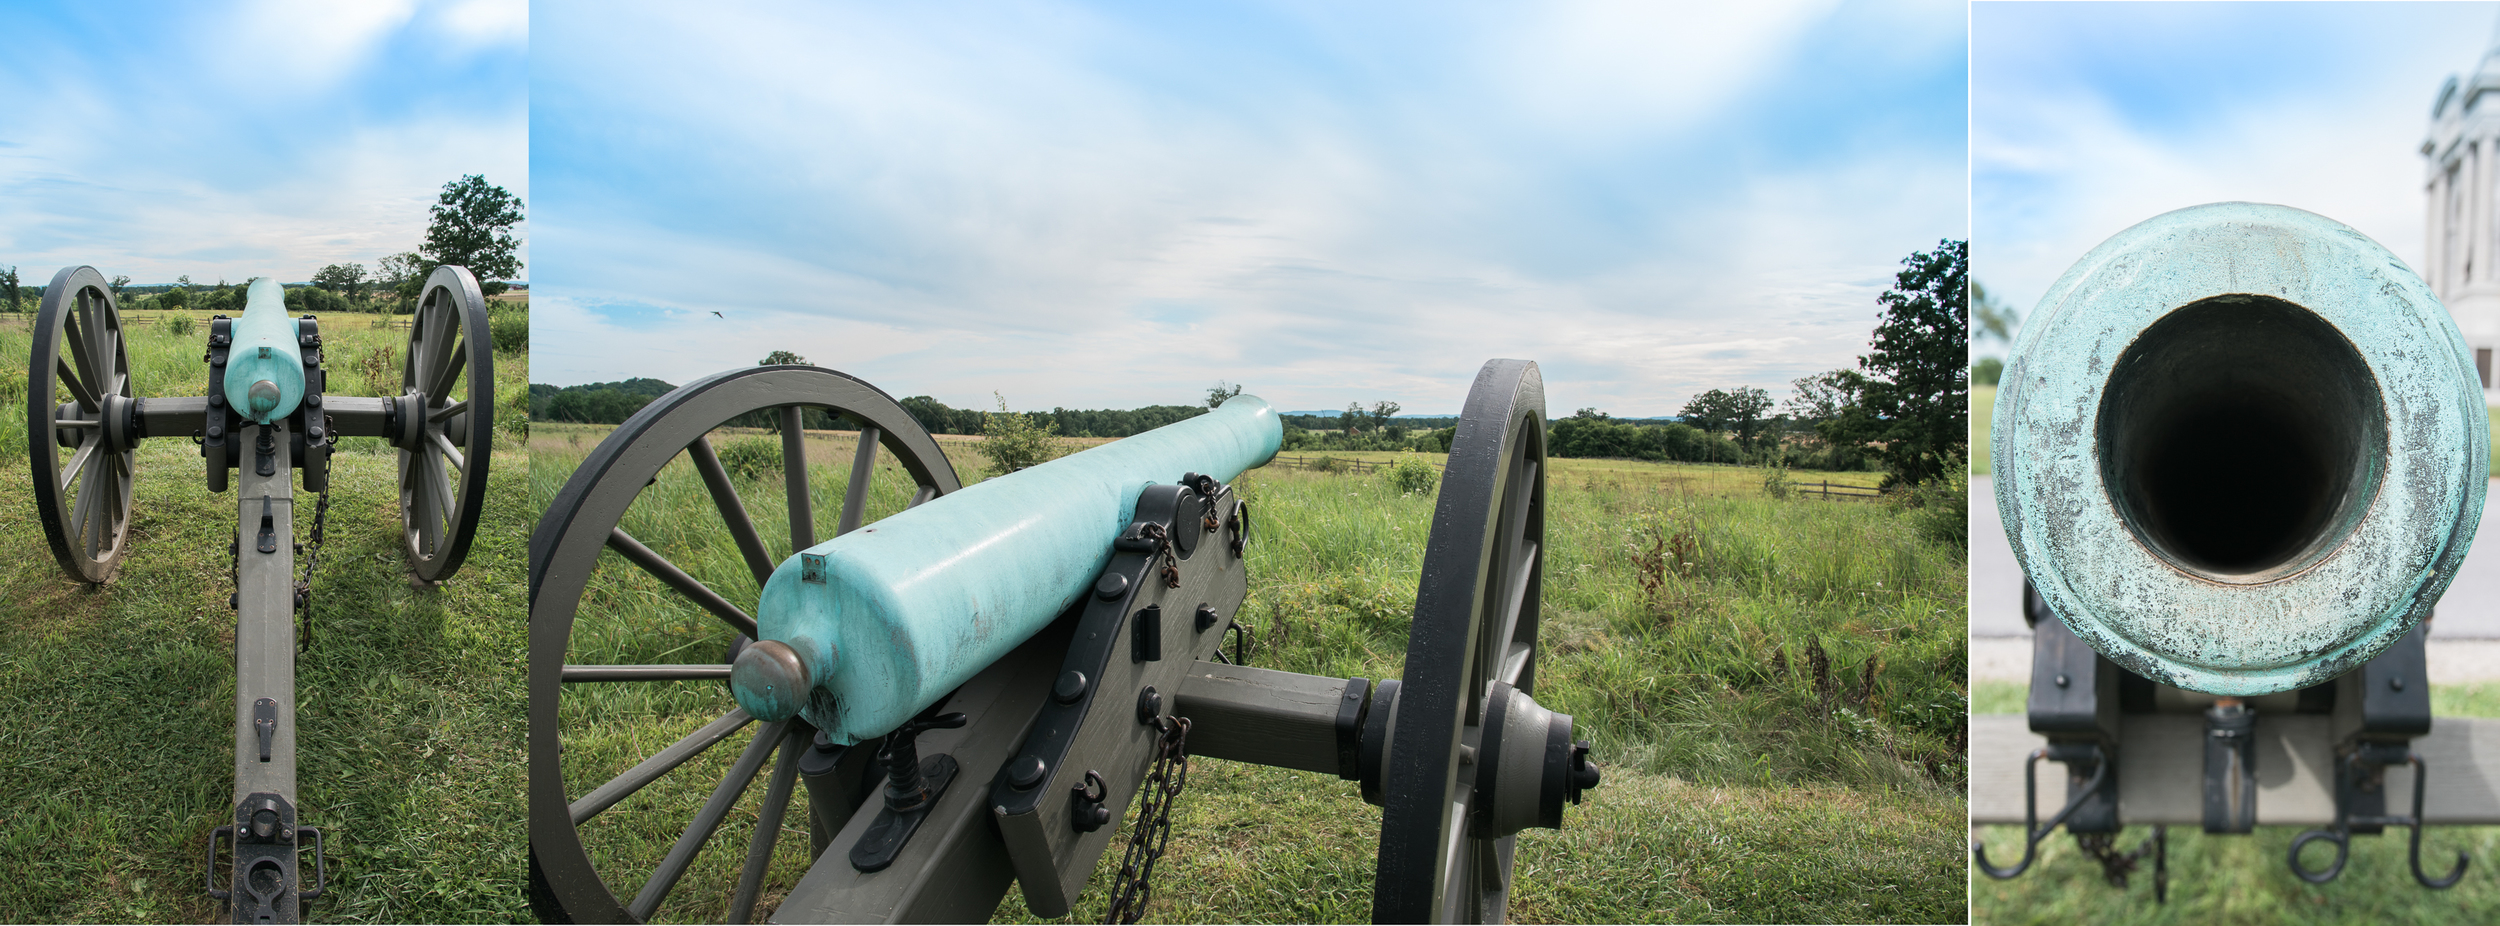 Beautiful patina on these canons, just outside the Pennsylvania Memorial